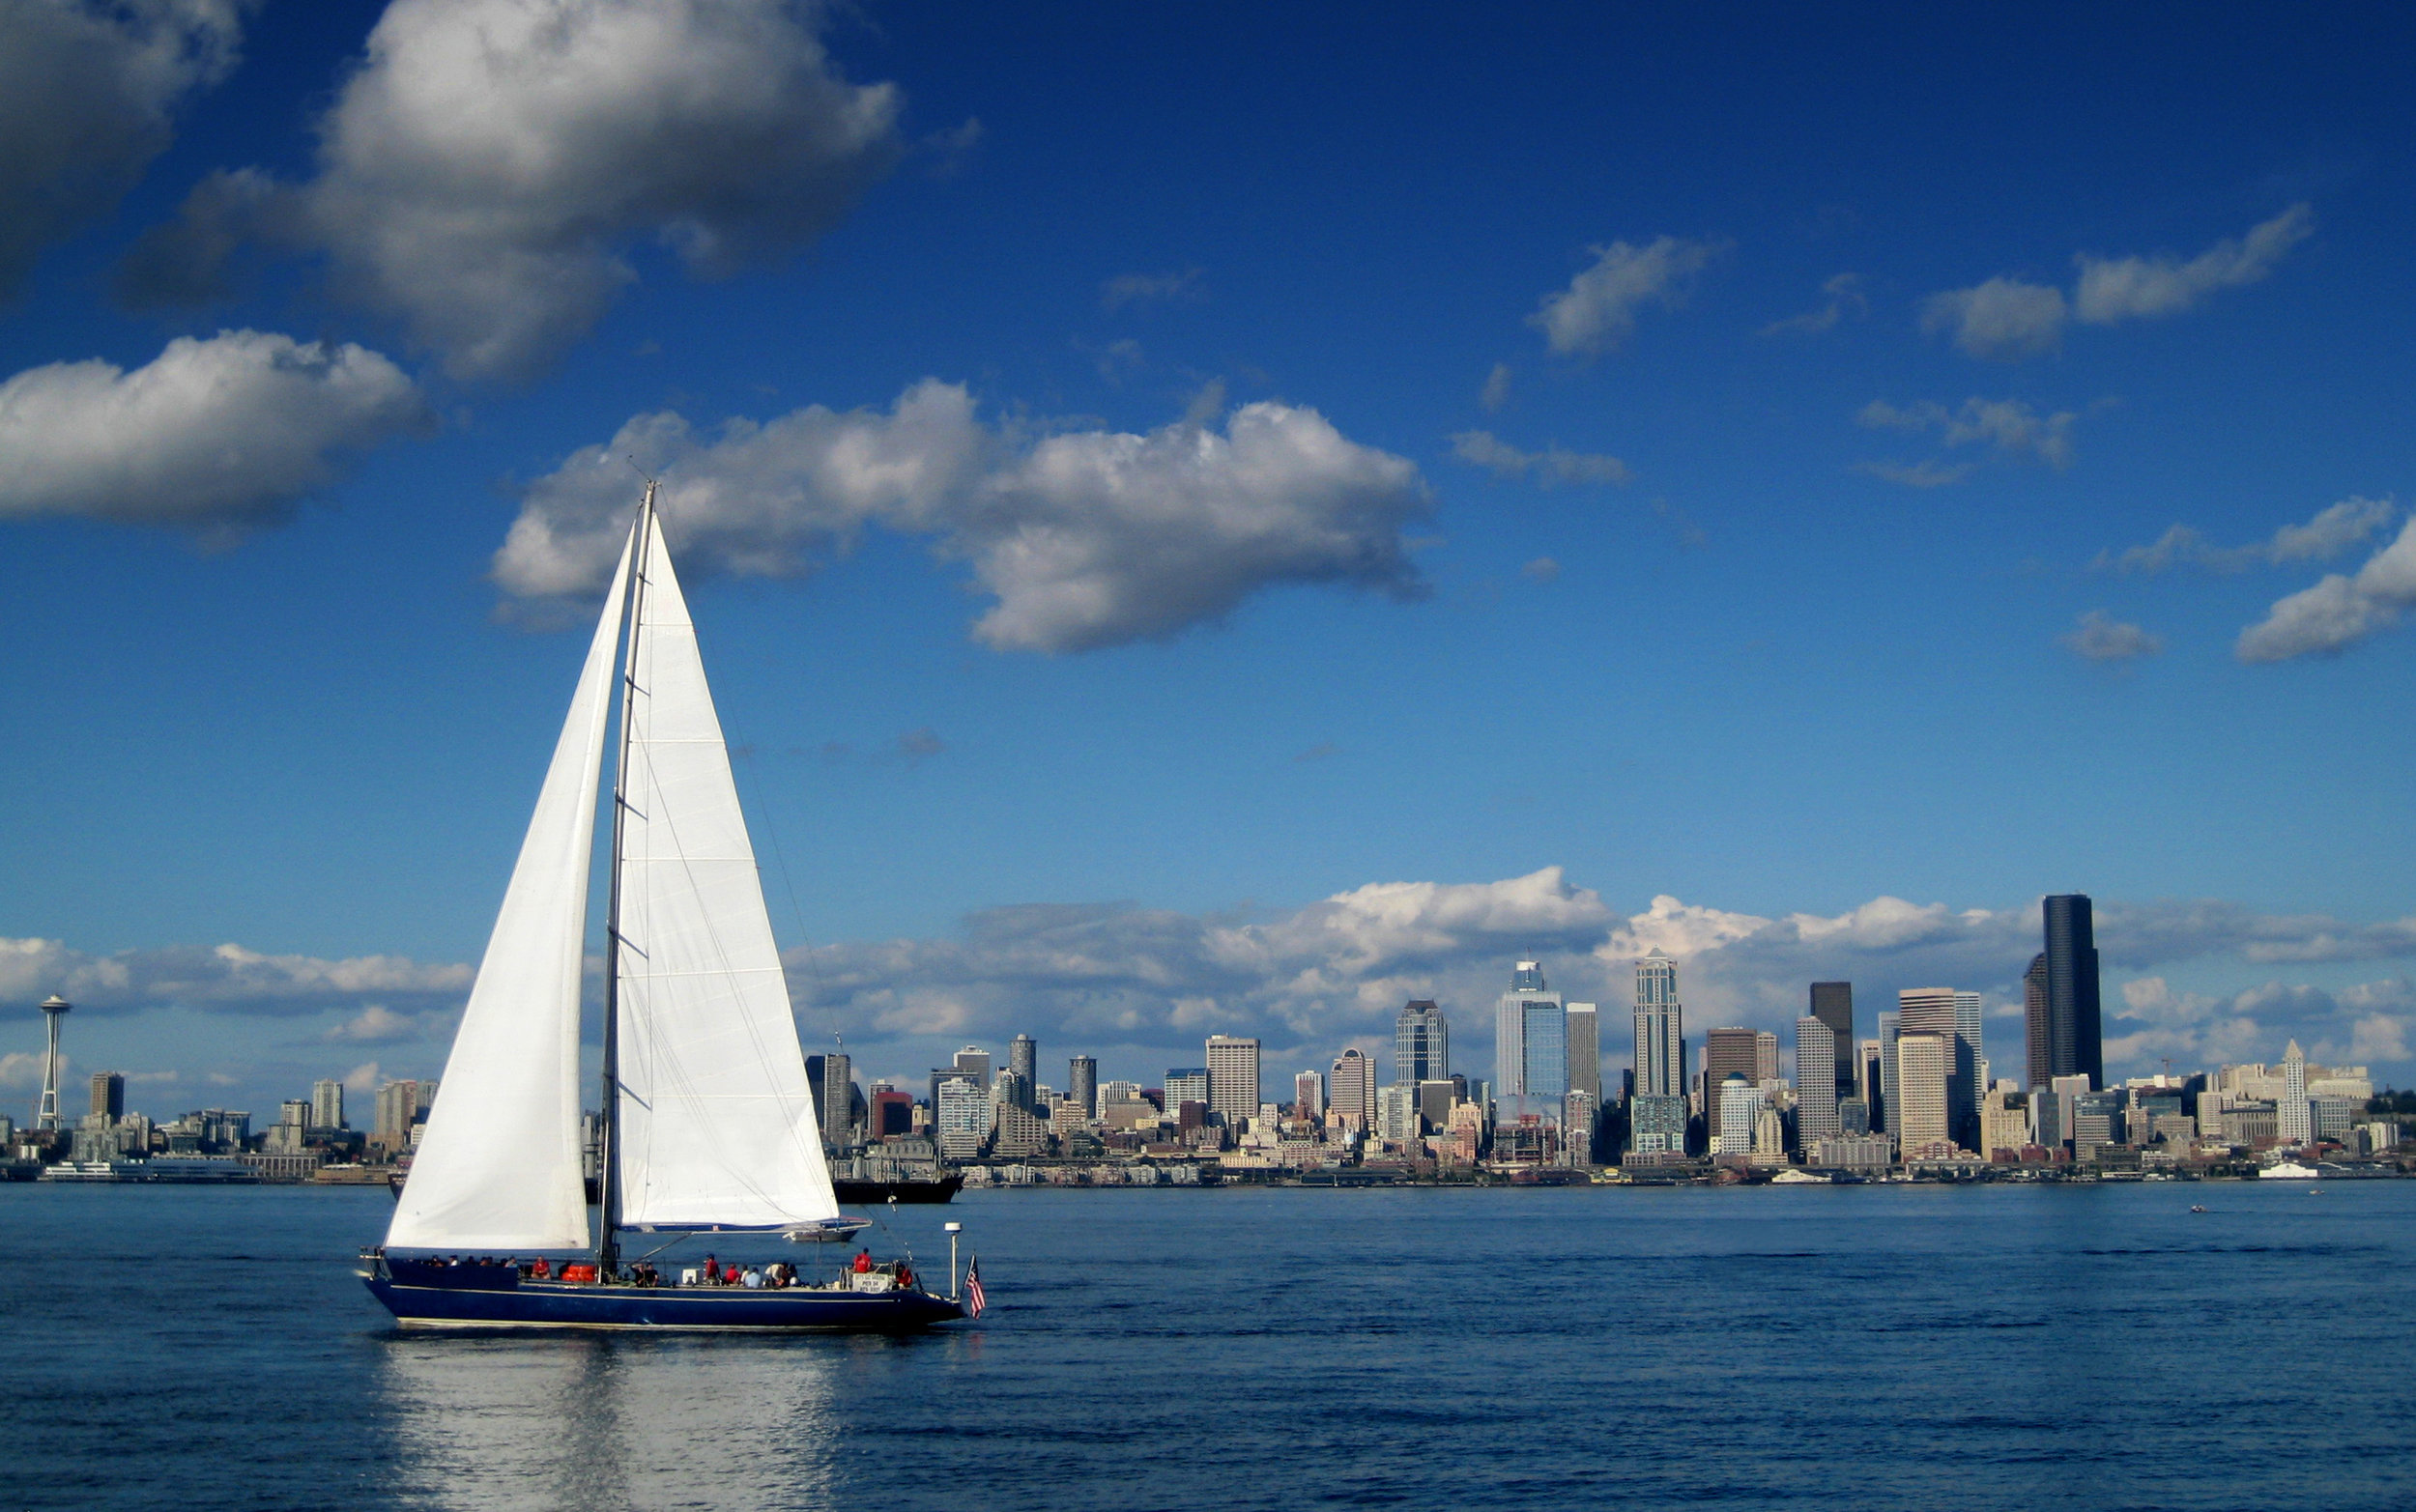 Seattle Skyline with a large sailboat in the foreground with the sails extending above the hoirzon. The Seattle Space Needle frames the left edge of the composition.